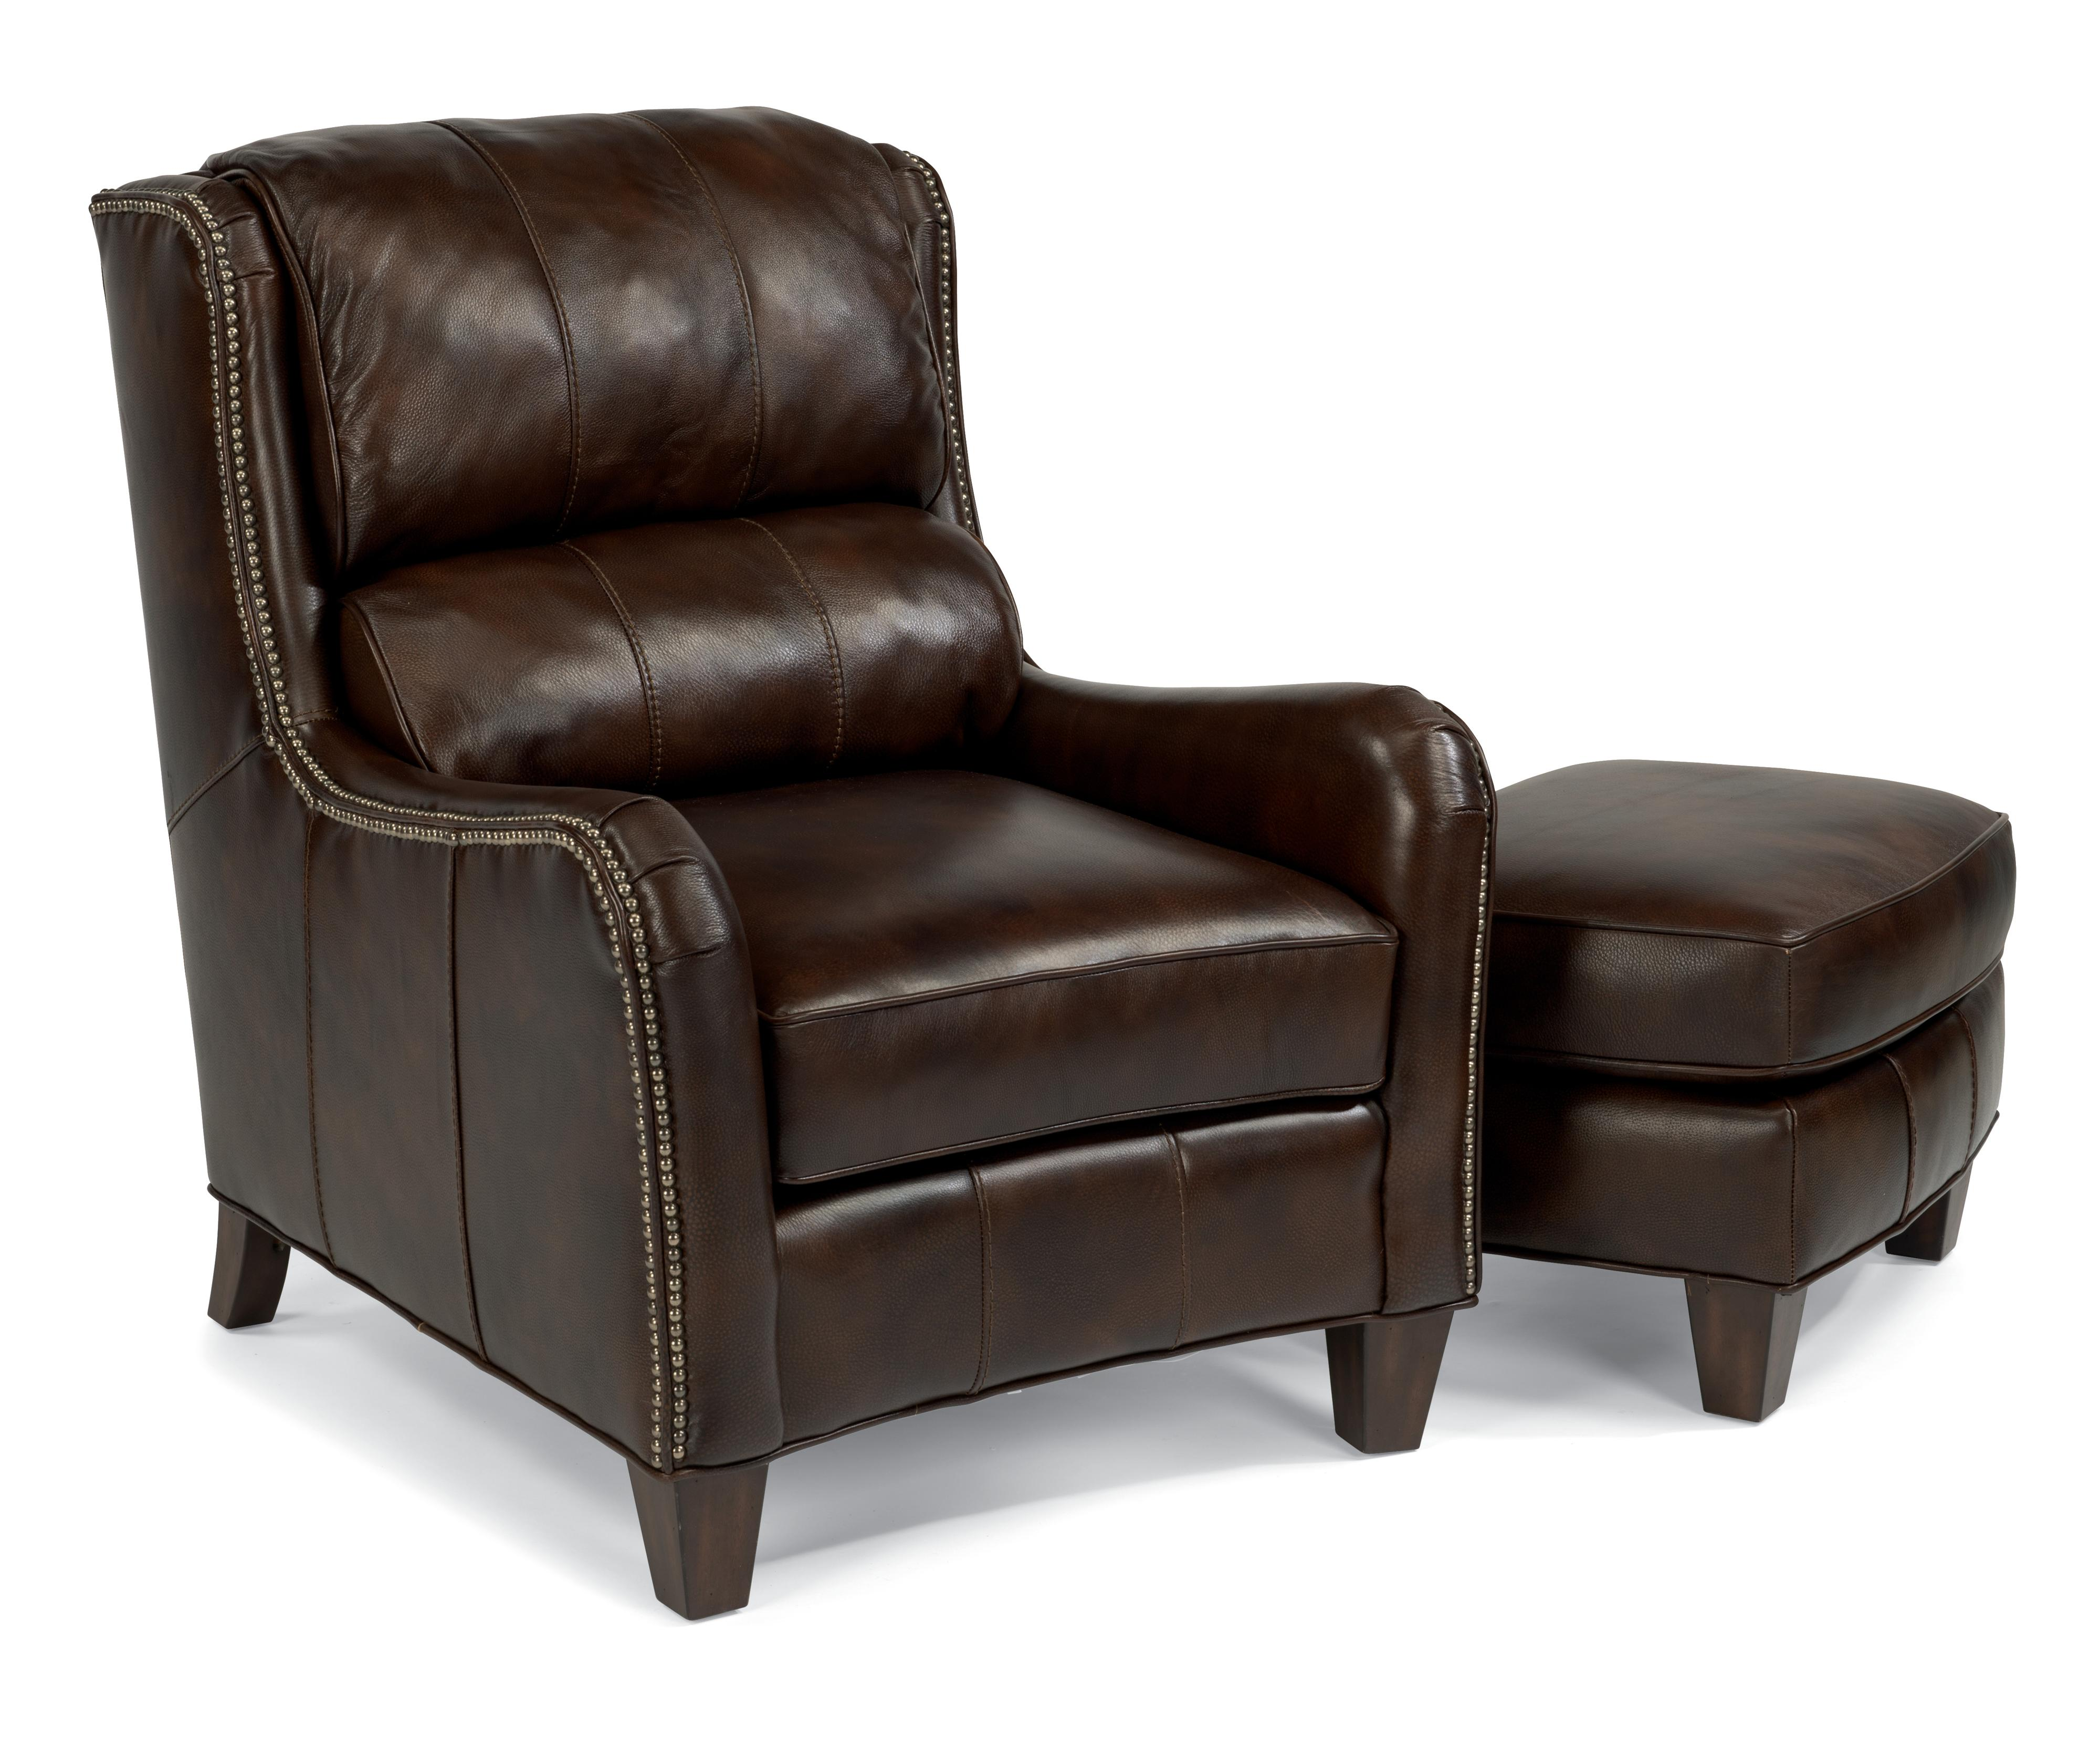 Flexsteel Latitudes-Lukas Chair and Ottoman - Item Number: 1136-10+1136-08-418-76